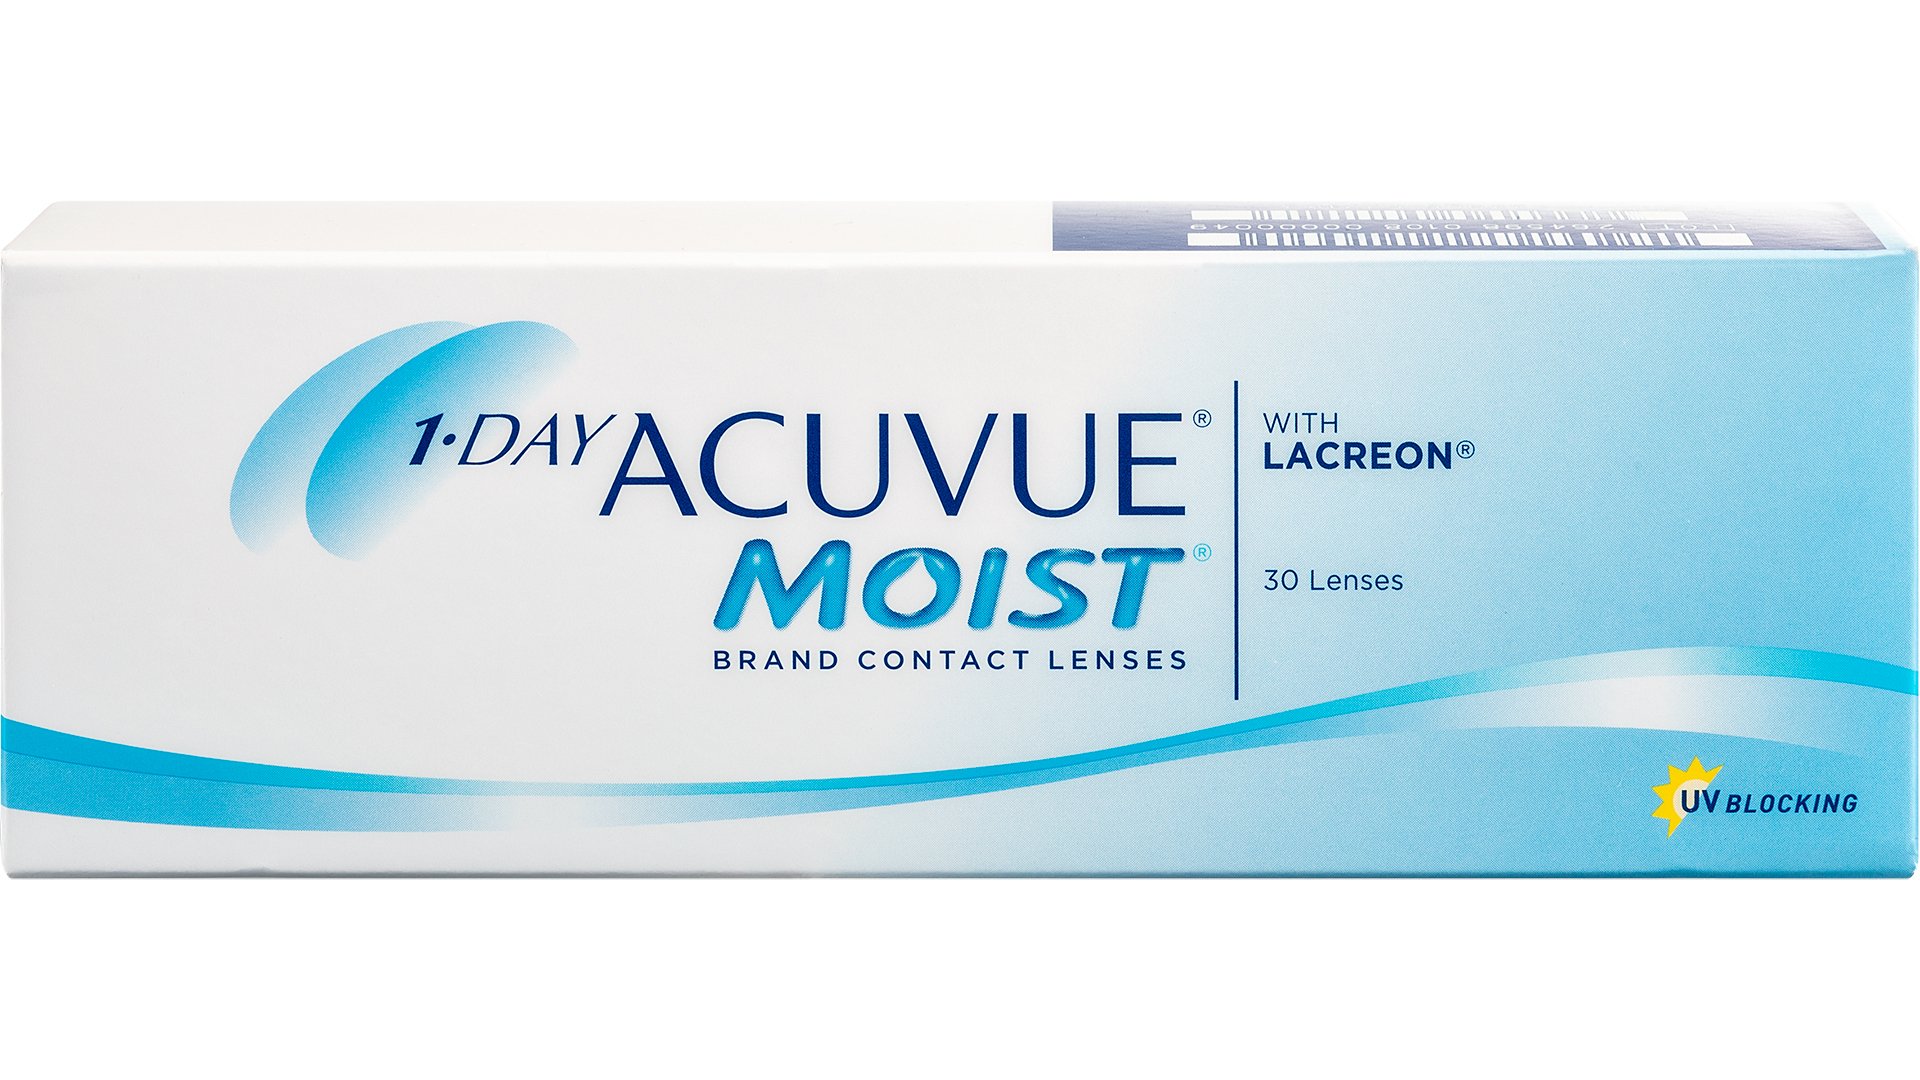 Front 1-day ACUVUE® Moist